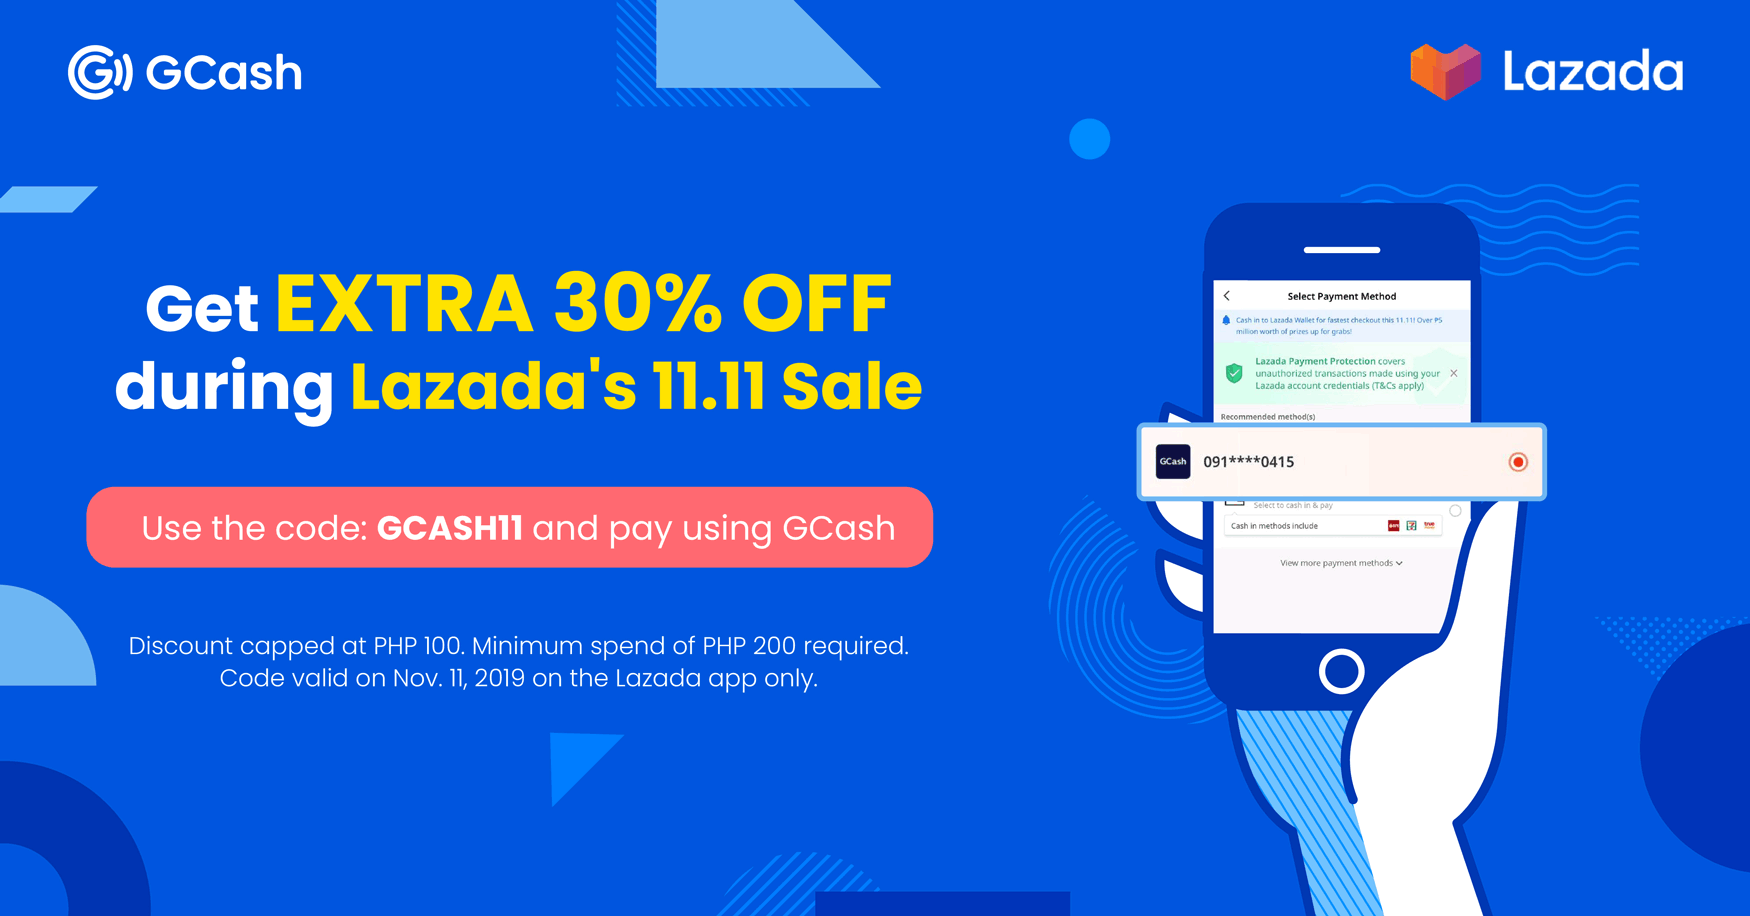 GCash x Lazada 11 11 Sale - GCash